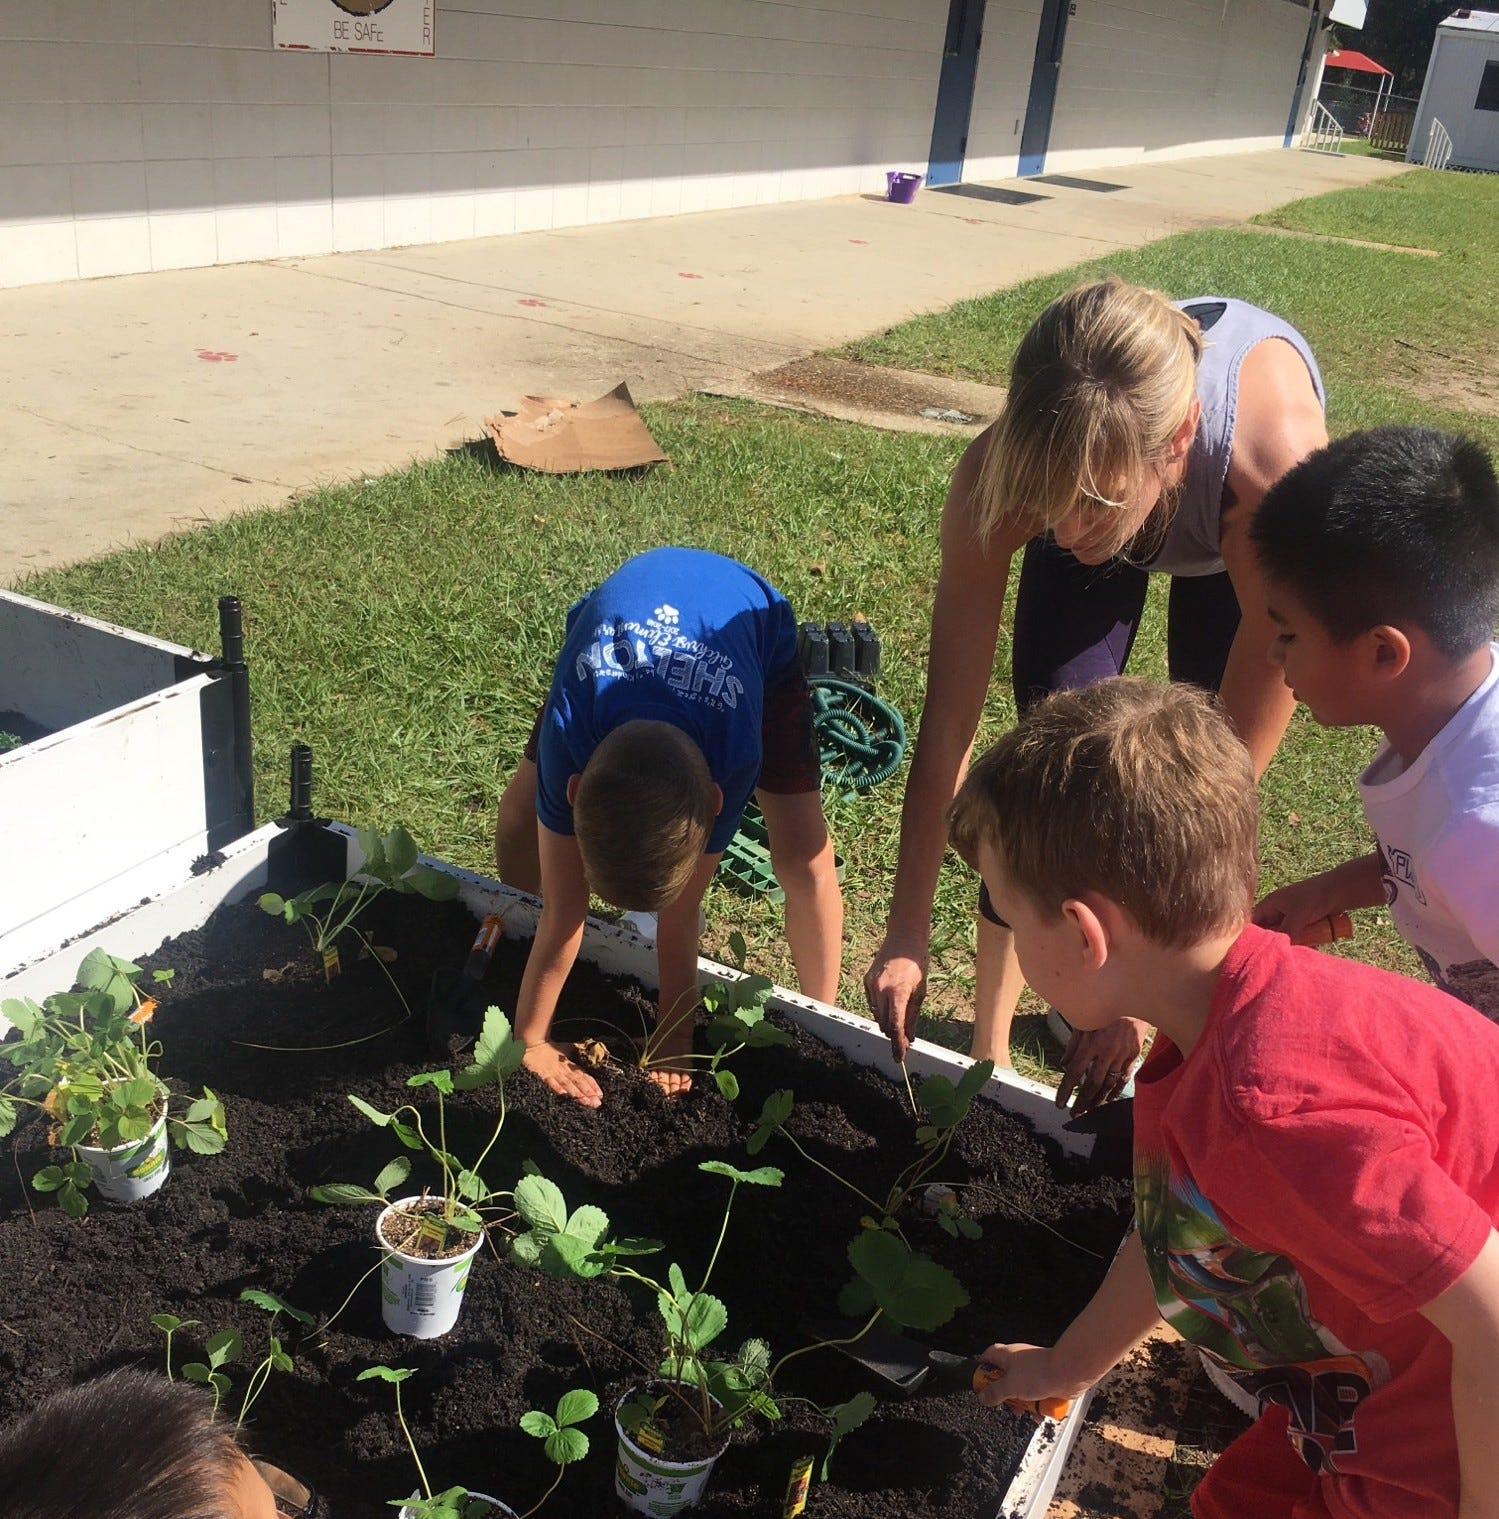 From a turnip seed: Farm to school grant connects kids to veggies